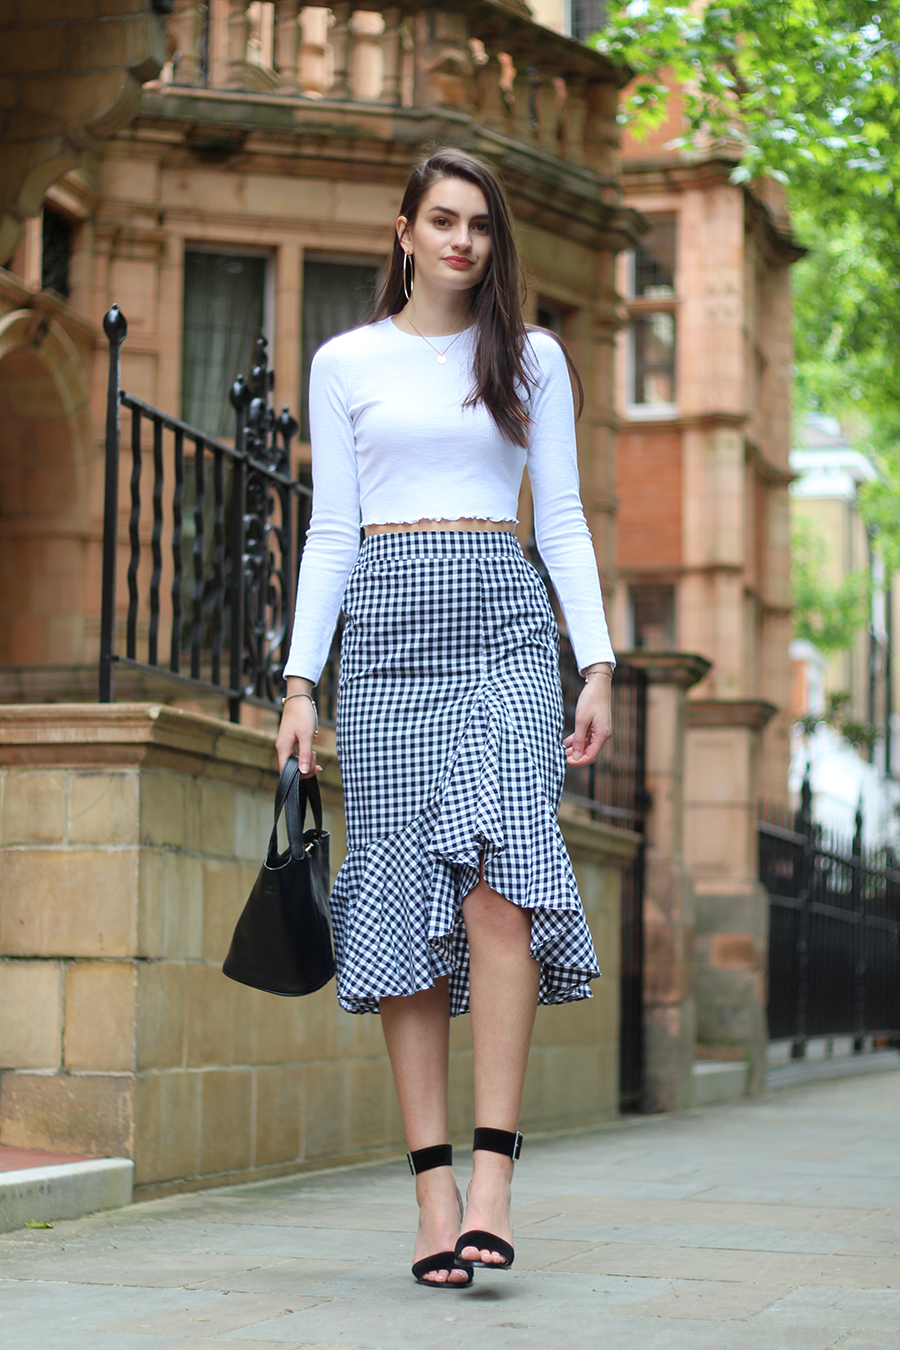 monochrome gingham skirt